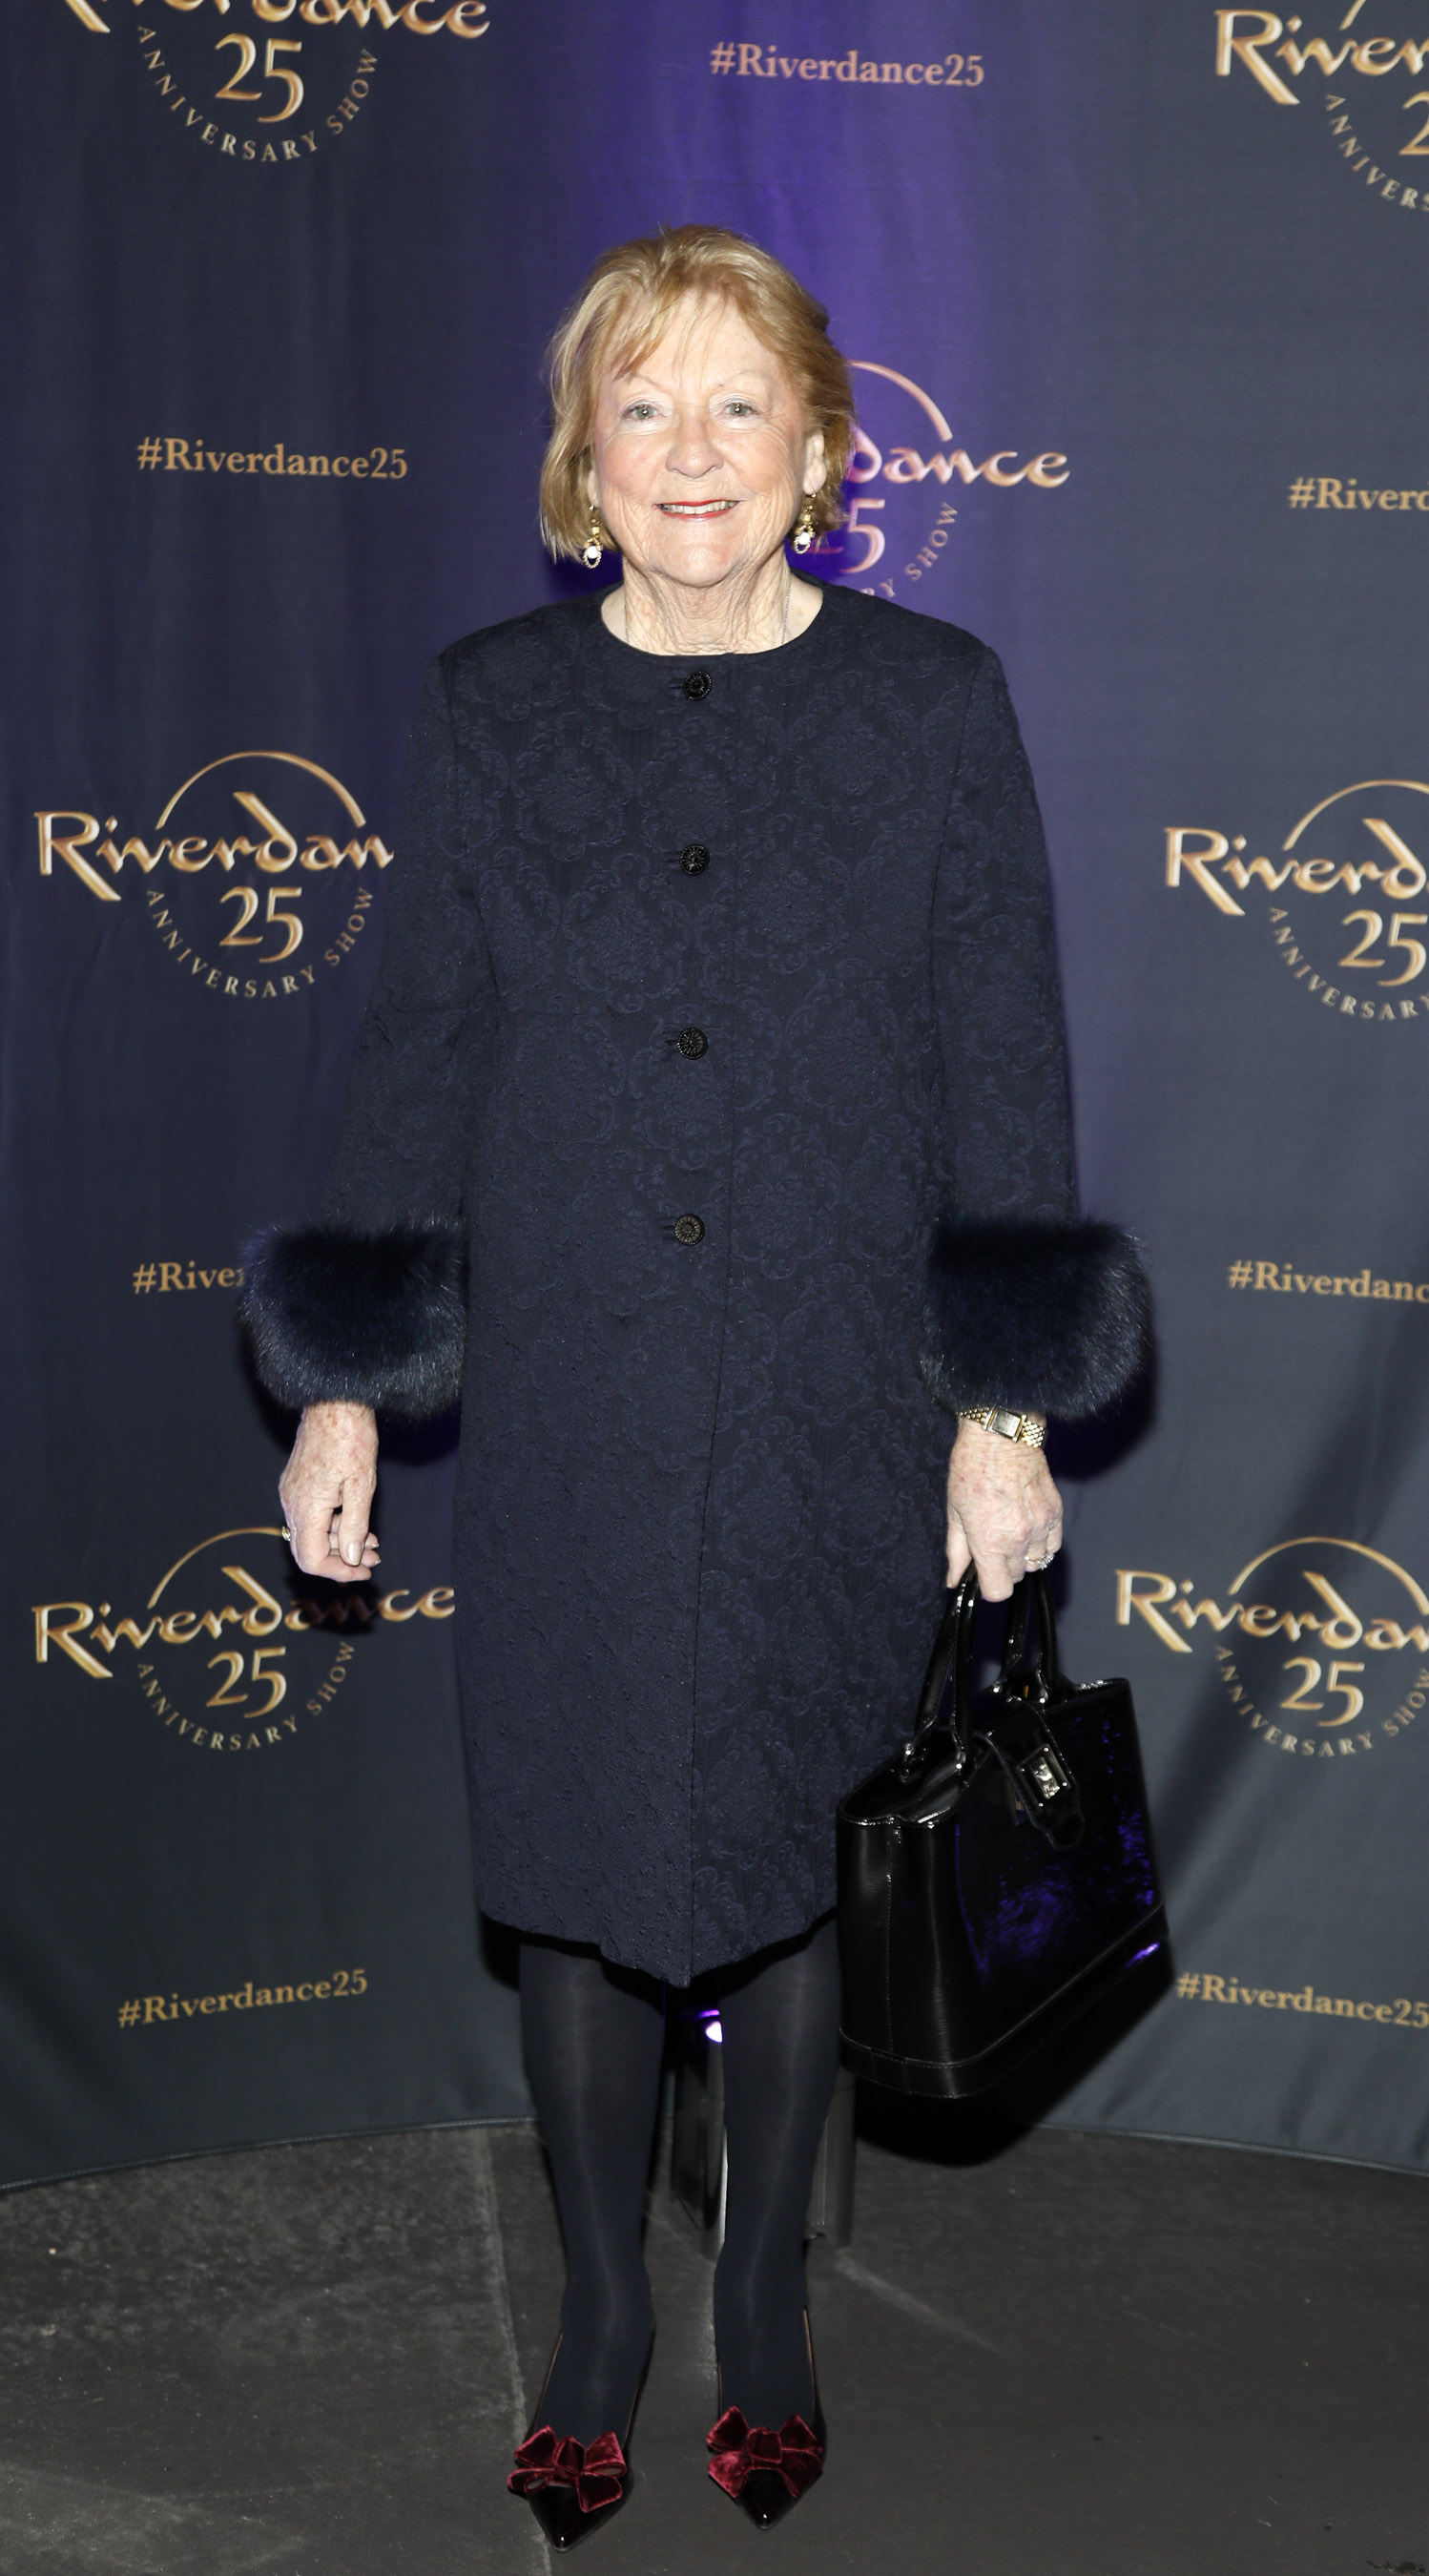 Kathleen Watkins at the historic gala performance of Riverdance 25th Anniversary show at 3Arena Dublin exactly 25 years to the day that Riverdance was first performed at the Point Depot.  Photo: Kieran Harnett